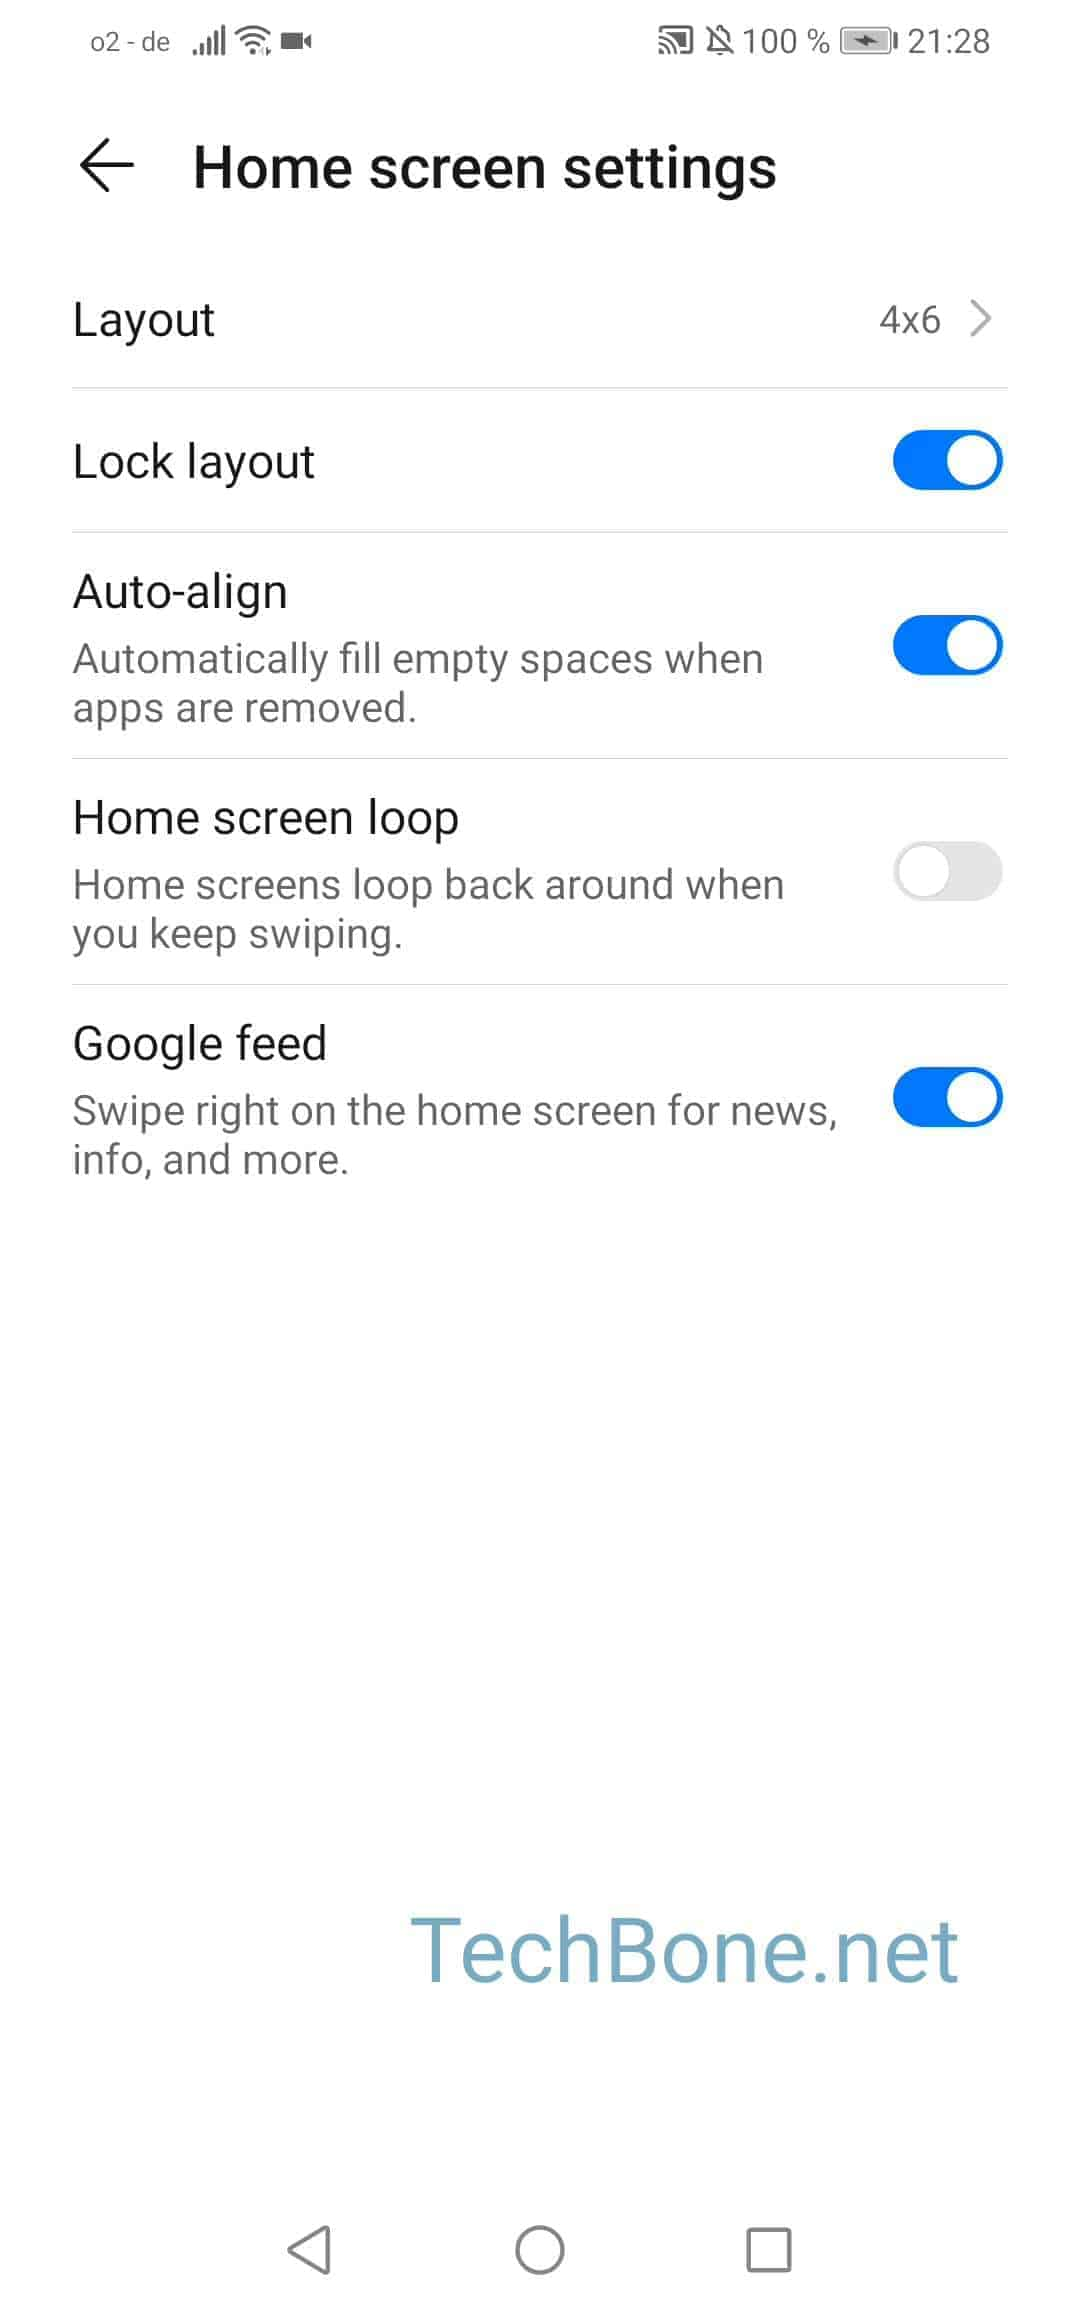 Step 4: Activate or deactivate Home screen loop